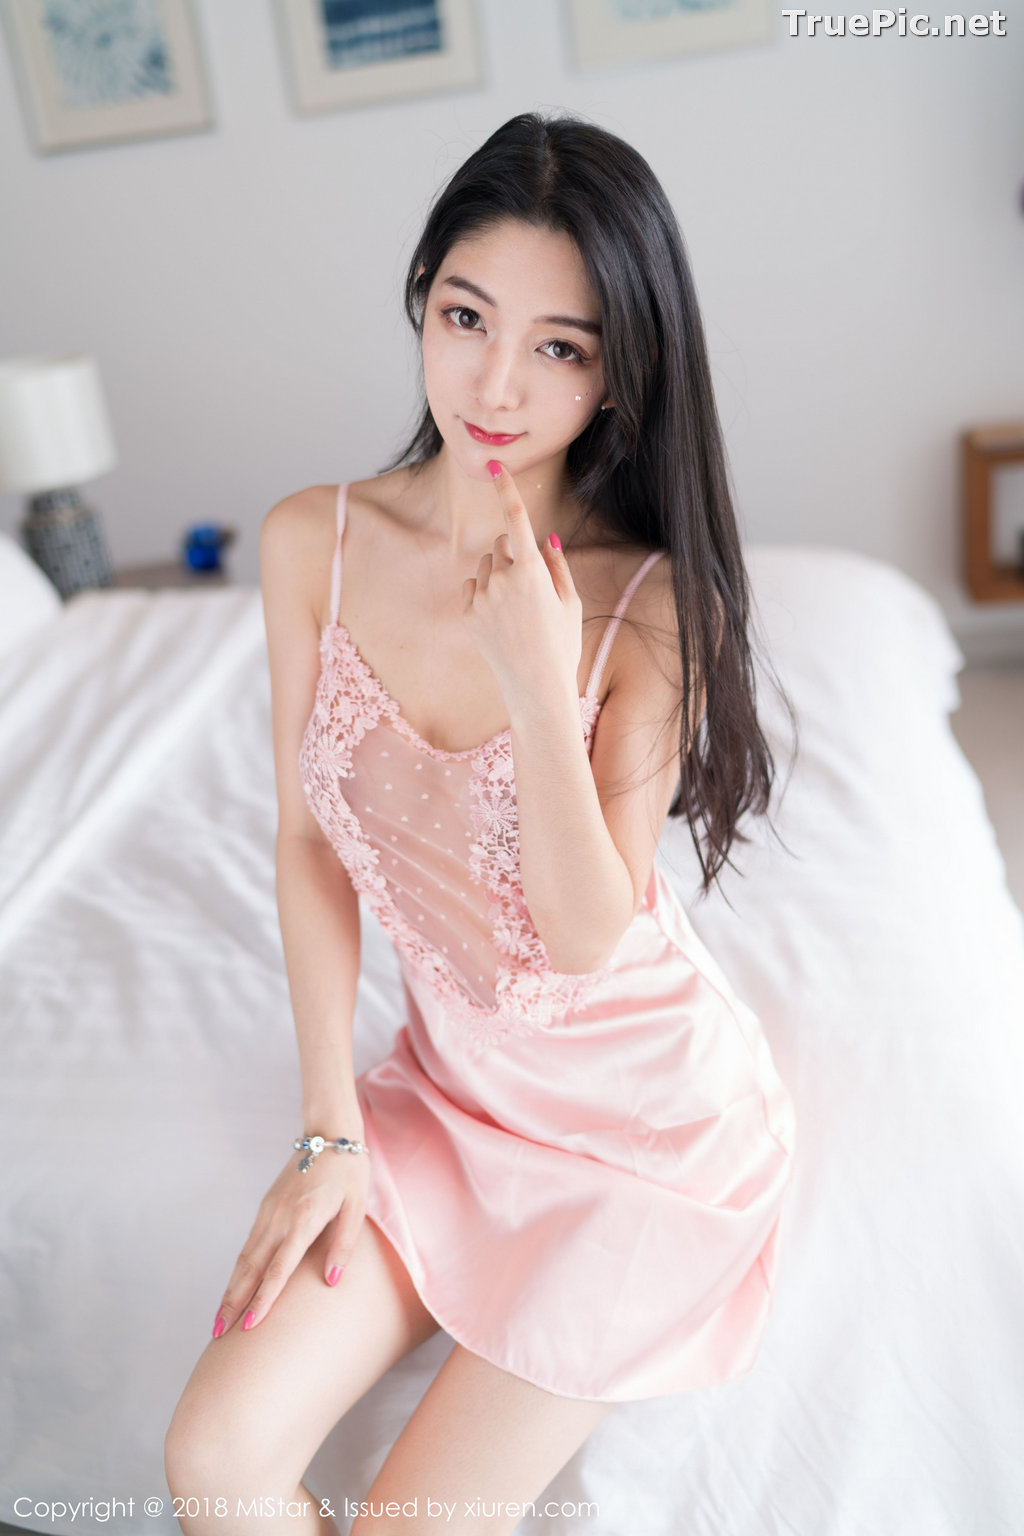 Image MiStar Vol.238 - Chinese Model - Xiao Reba (Angela小热巴) - Sleep Dress and Monokini - TruePic.net - Picture-2